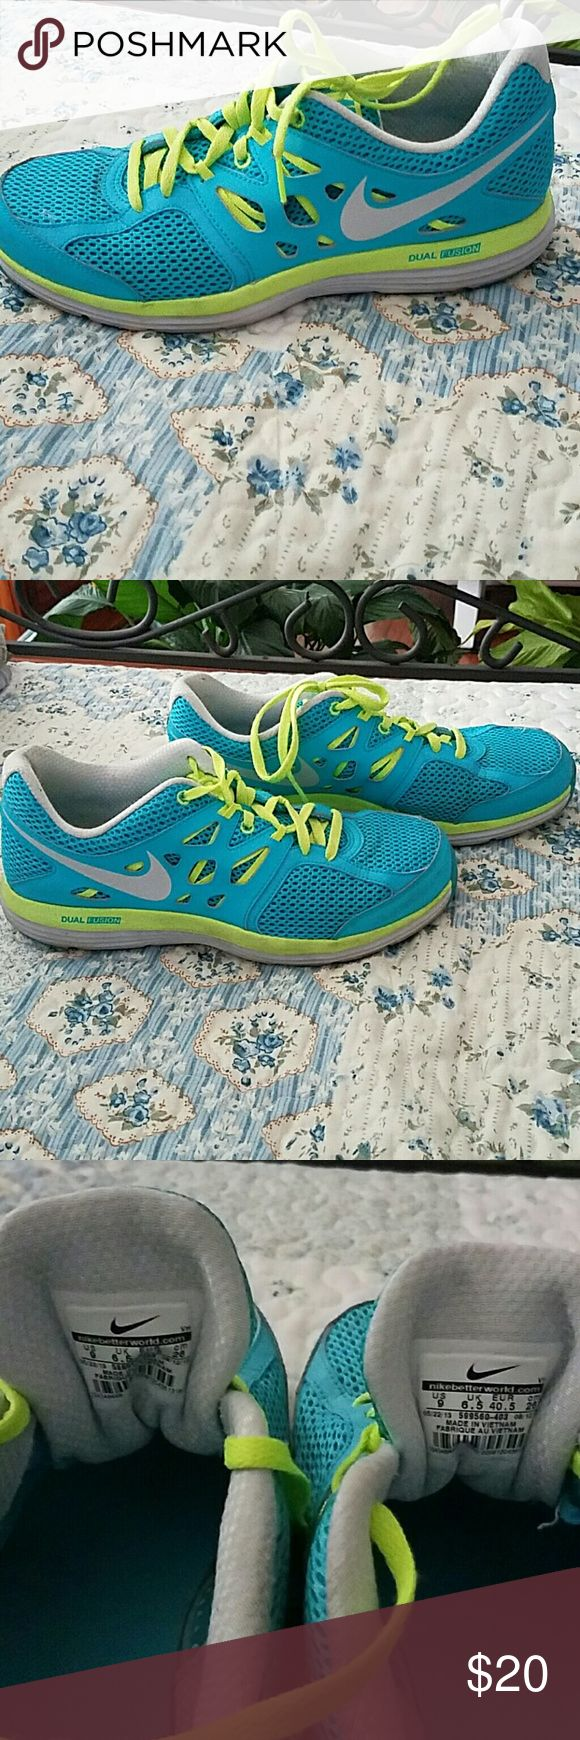 NIKE DUAL FUSION Aqua blue with neon green. Gently worn. No scuffs or damage. I LOVE shoes. Just trying to let some go to get more ;). Nike Shoes Athletic Shoes